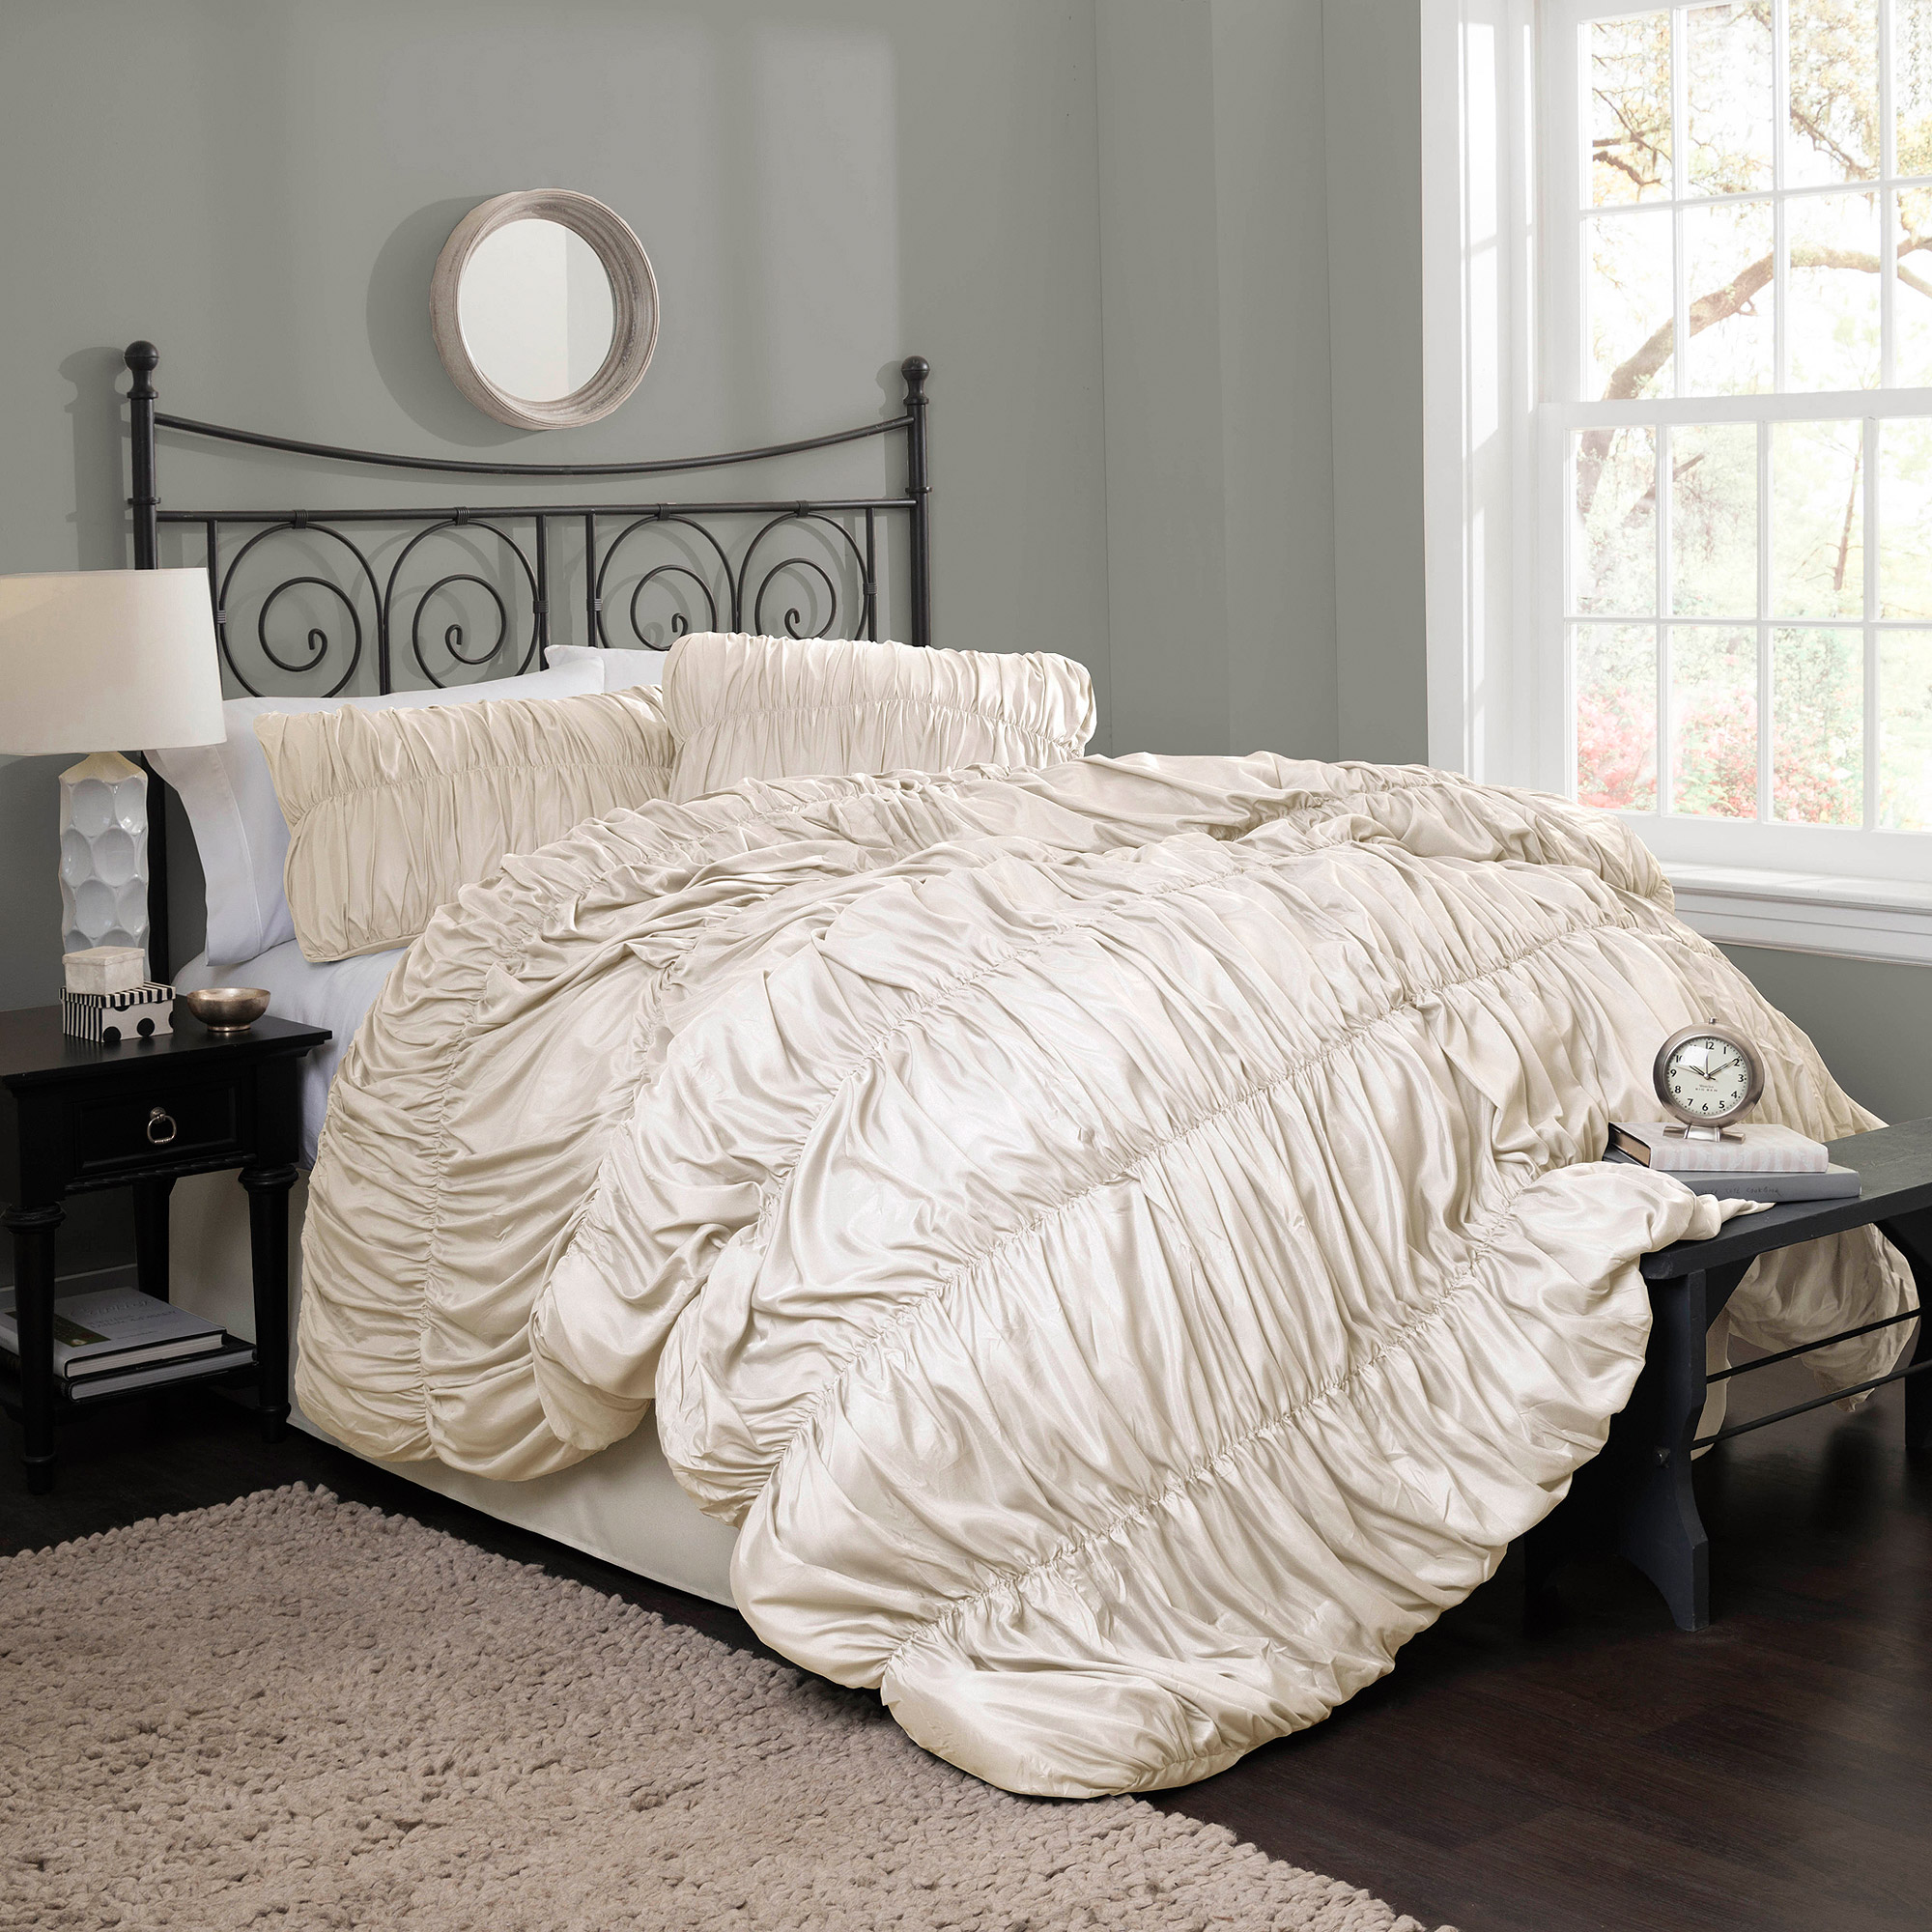 Venetian 4-Piece Bedding Comforter Set